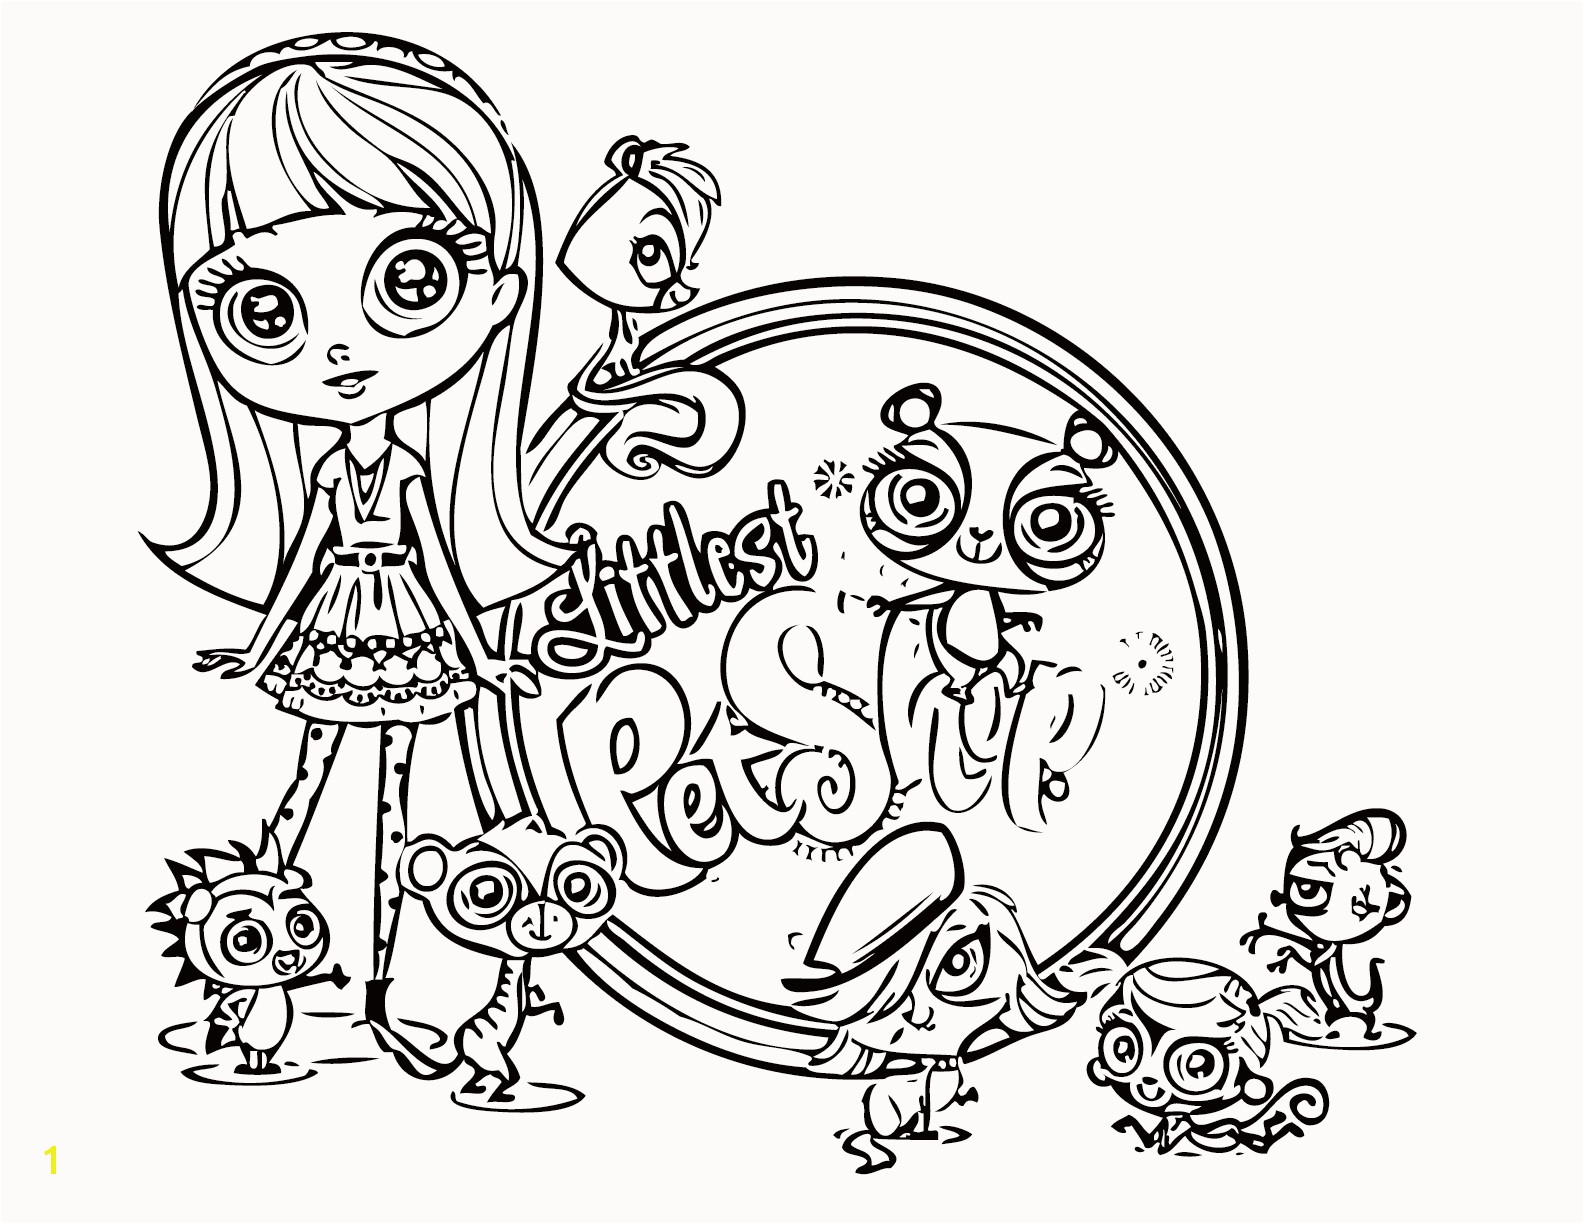 Pet Coloring Pages for Kids Inspirational Littlest Pet Shop Coloring Pages Best Coloring Pages for Kids